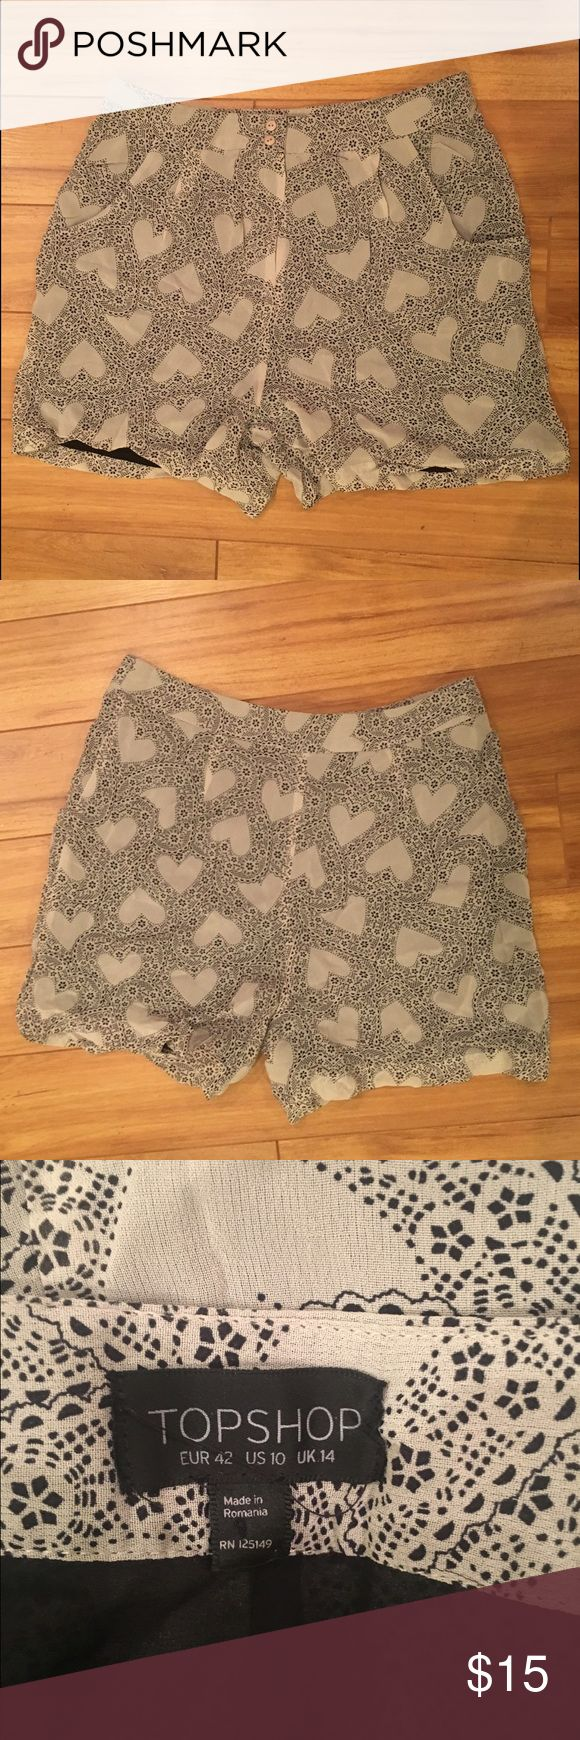 TopShop Heart Shorts - Size 10 No rips or stains. Topshop Shorts